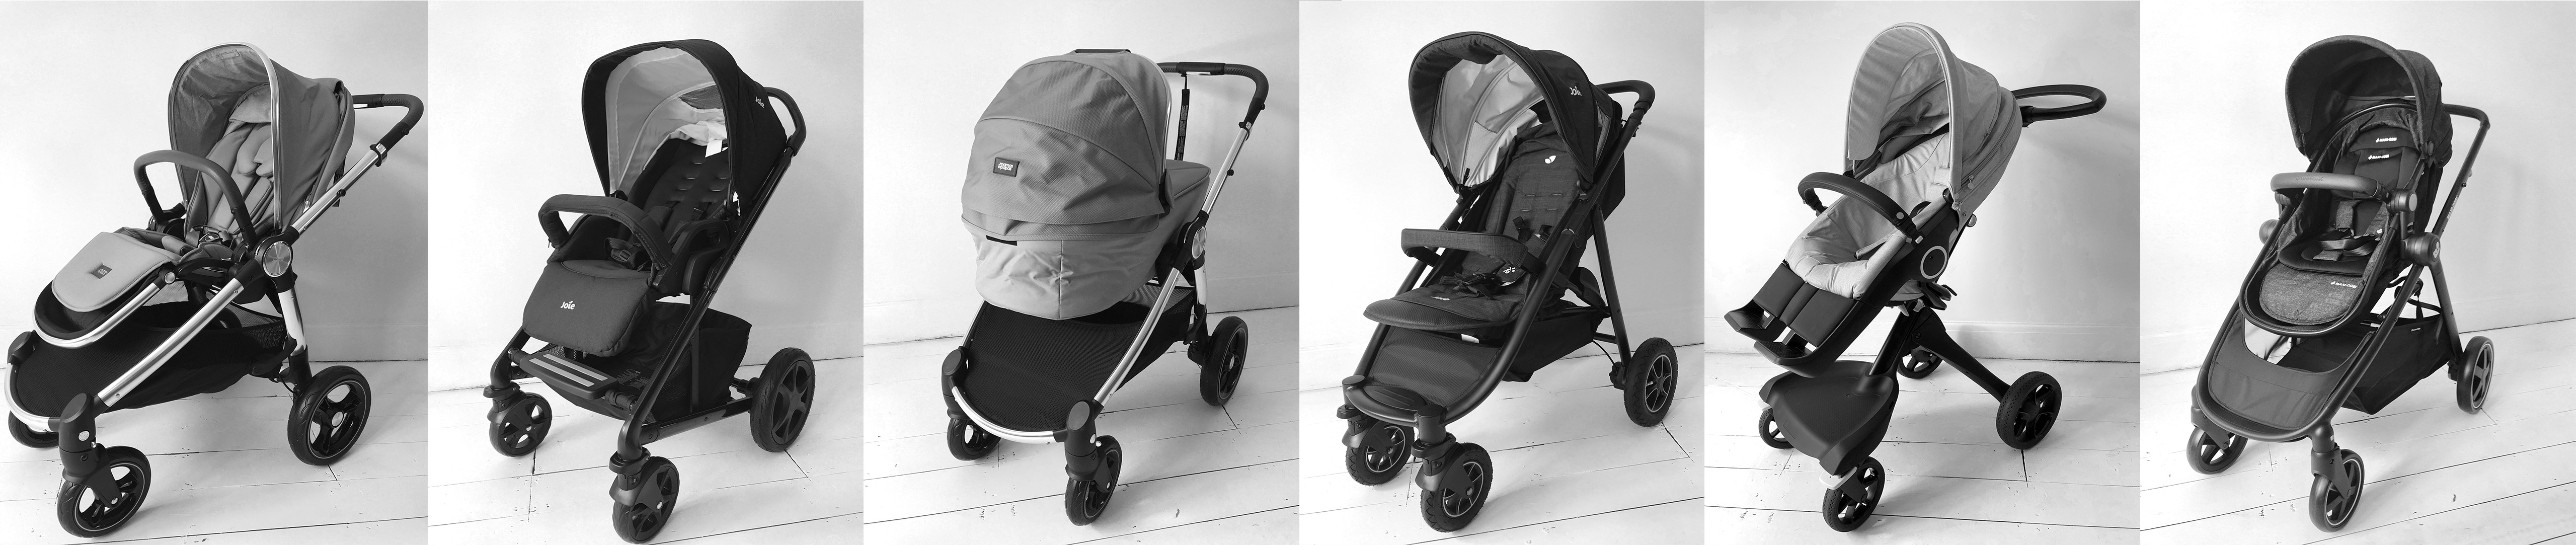 Dadsnet reviews 6 of the UK's best pushchairs in 2018, Pushchairs%, product-review%